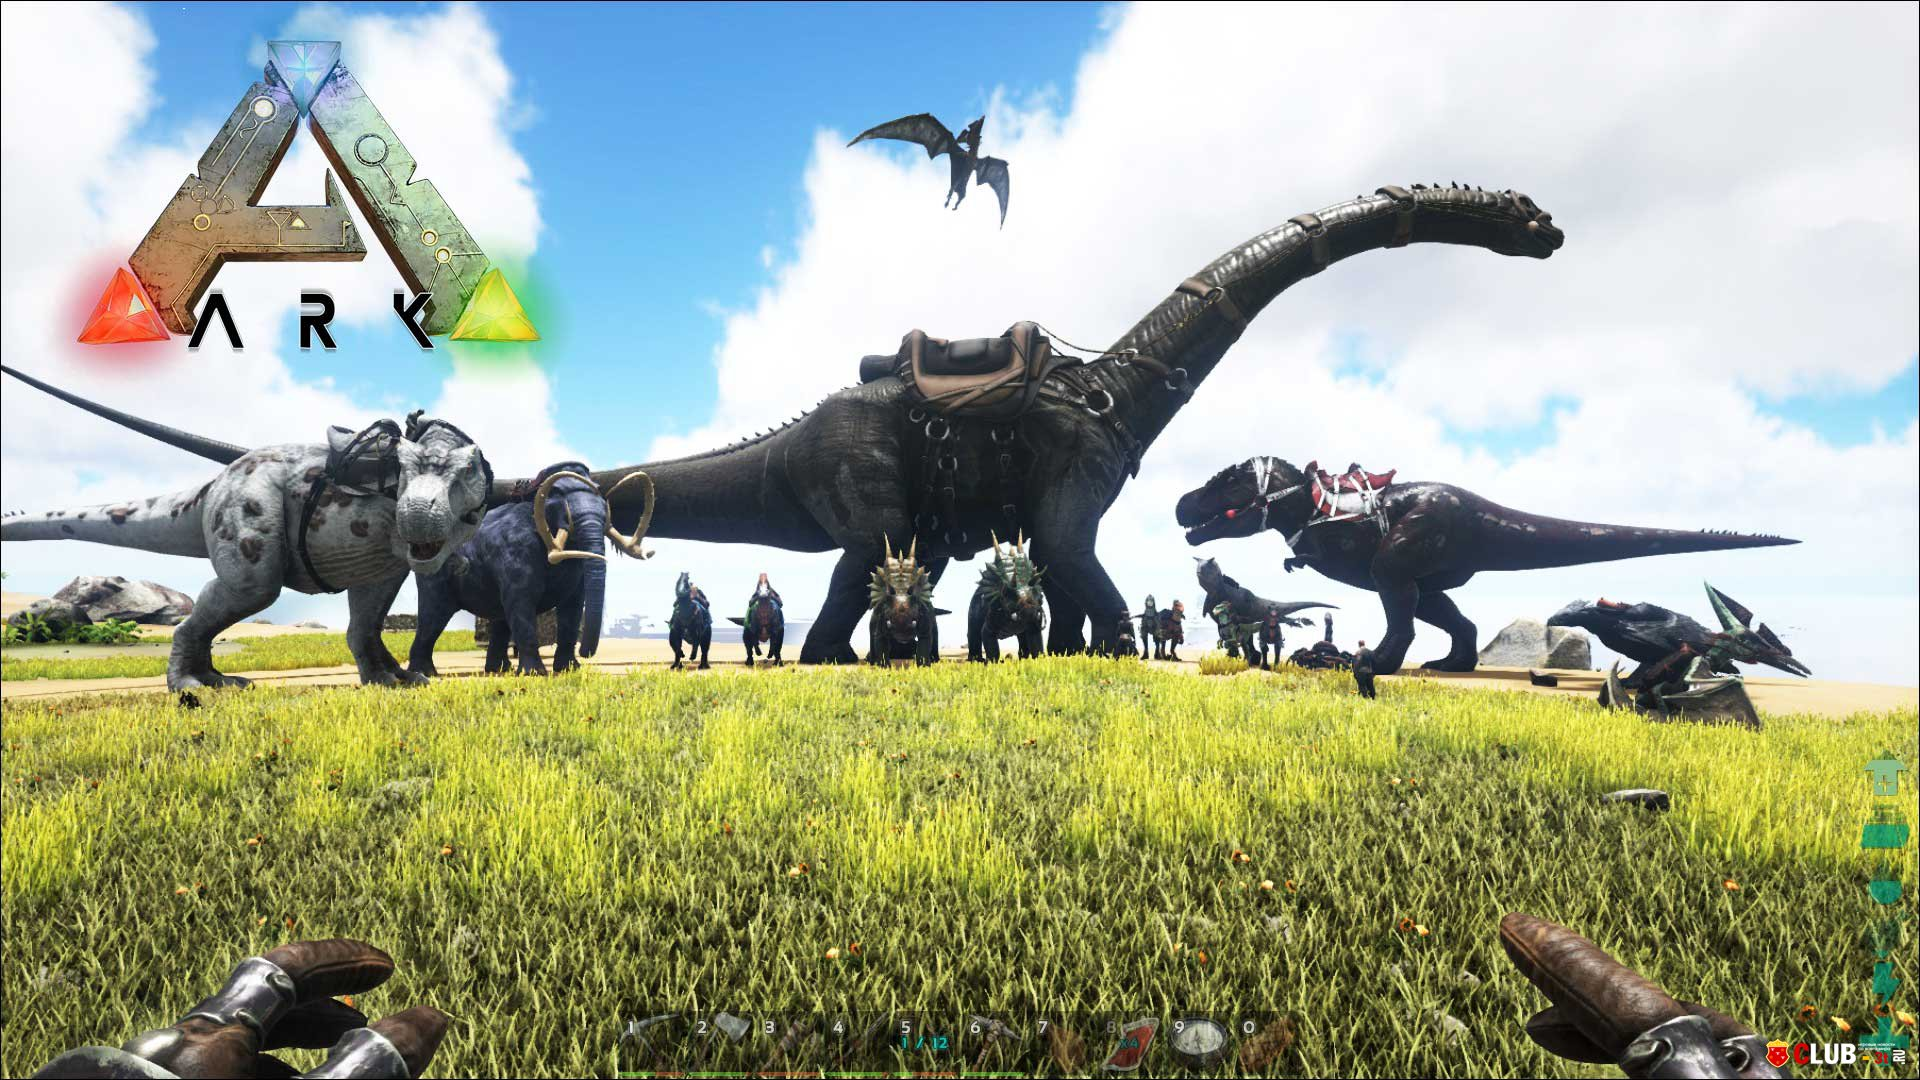 Ps4 Games Hd Wallpapers Ark Survival Evolved Wallpapers Pictures Images